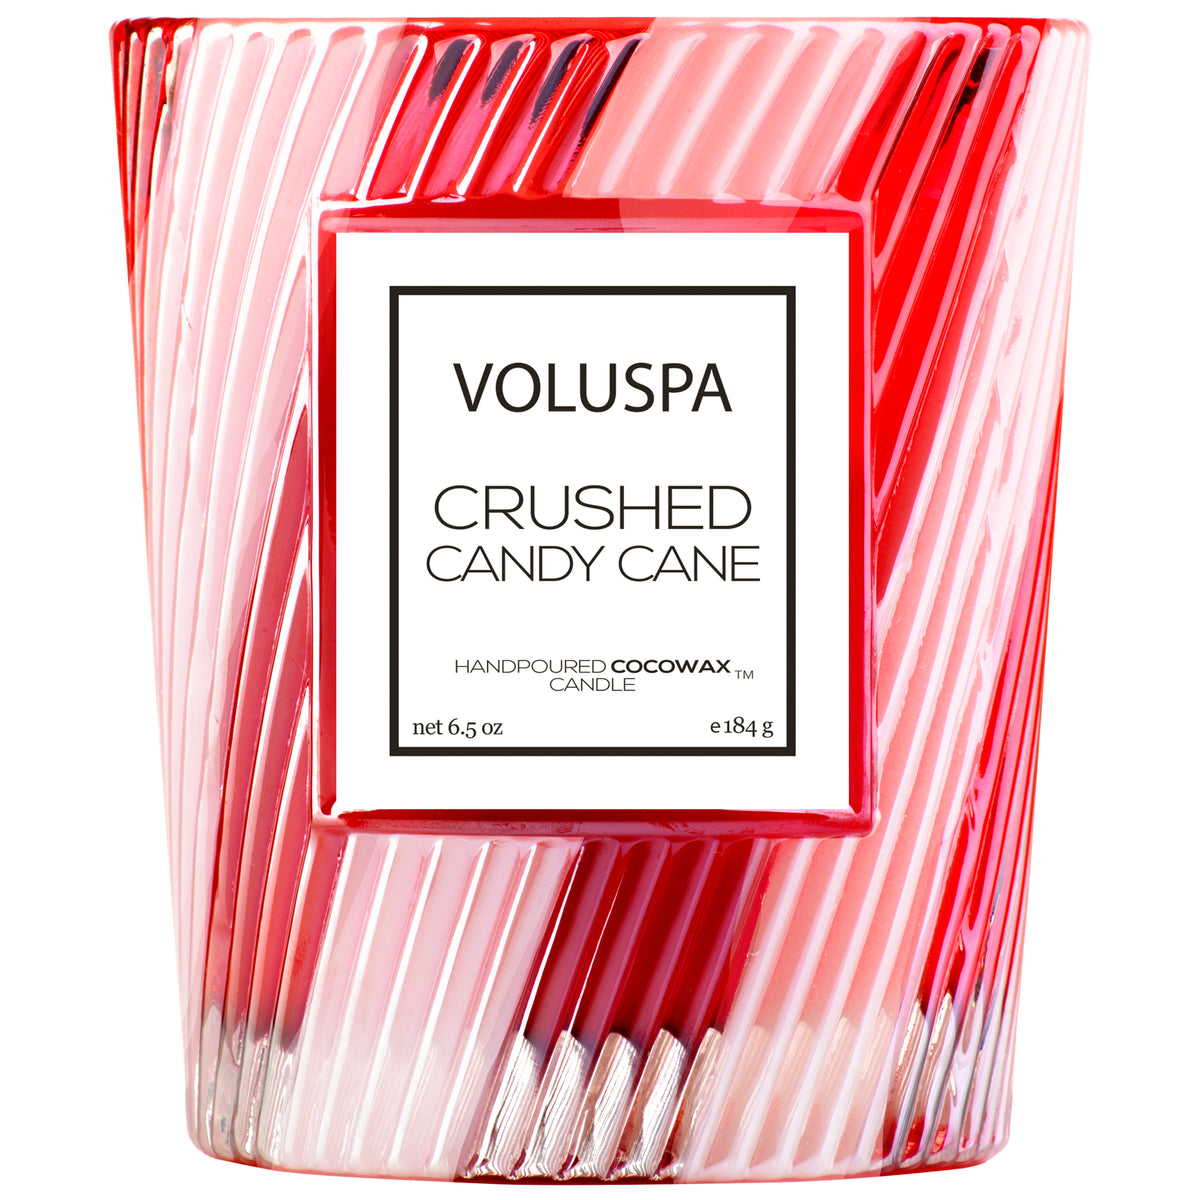 Crushed Candy Cane - Limited Edition Classic Candle - 1